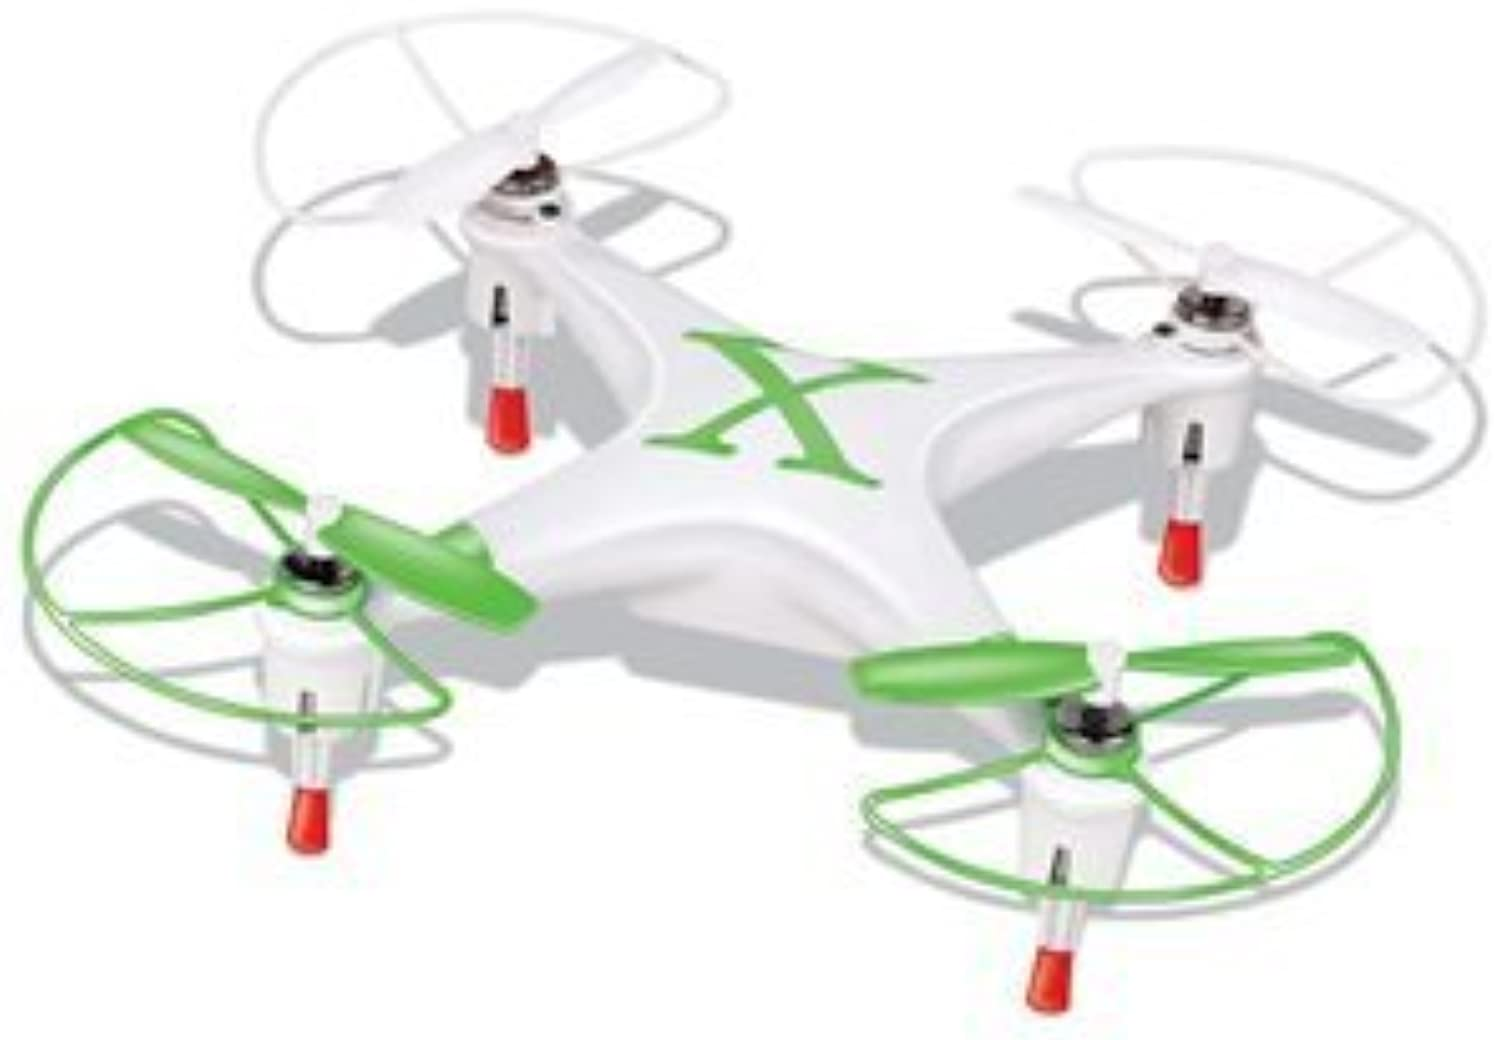 Microgear 2.4GHz Radio Controlled RC QX-827 4 Channel Mini Quadcopter - Green by Microgear